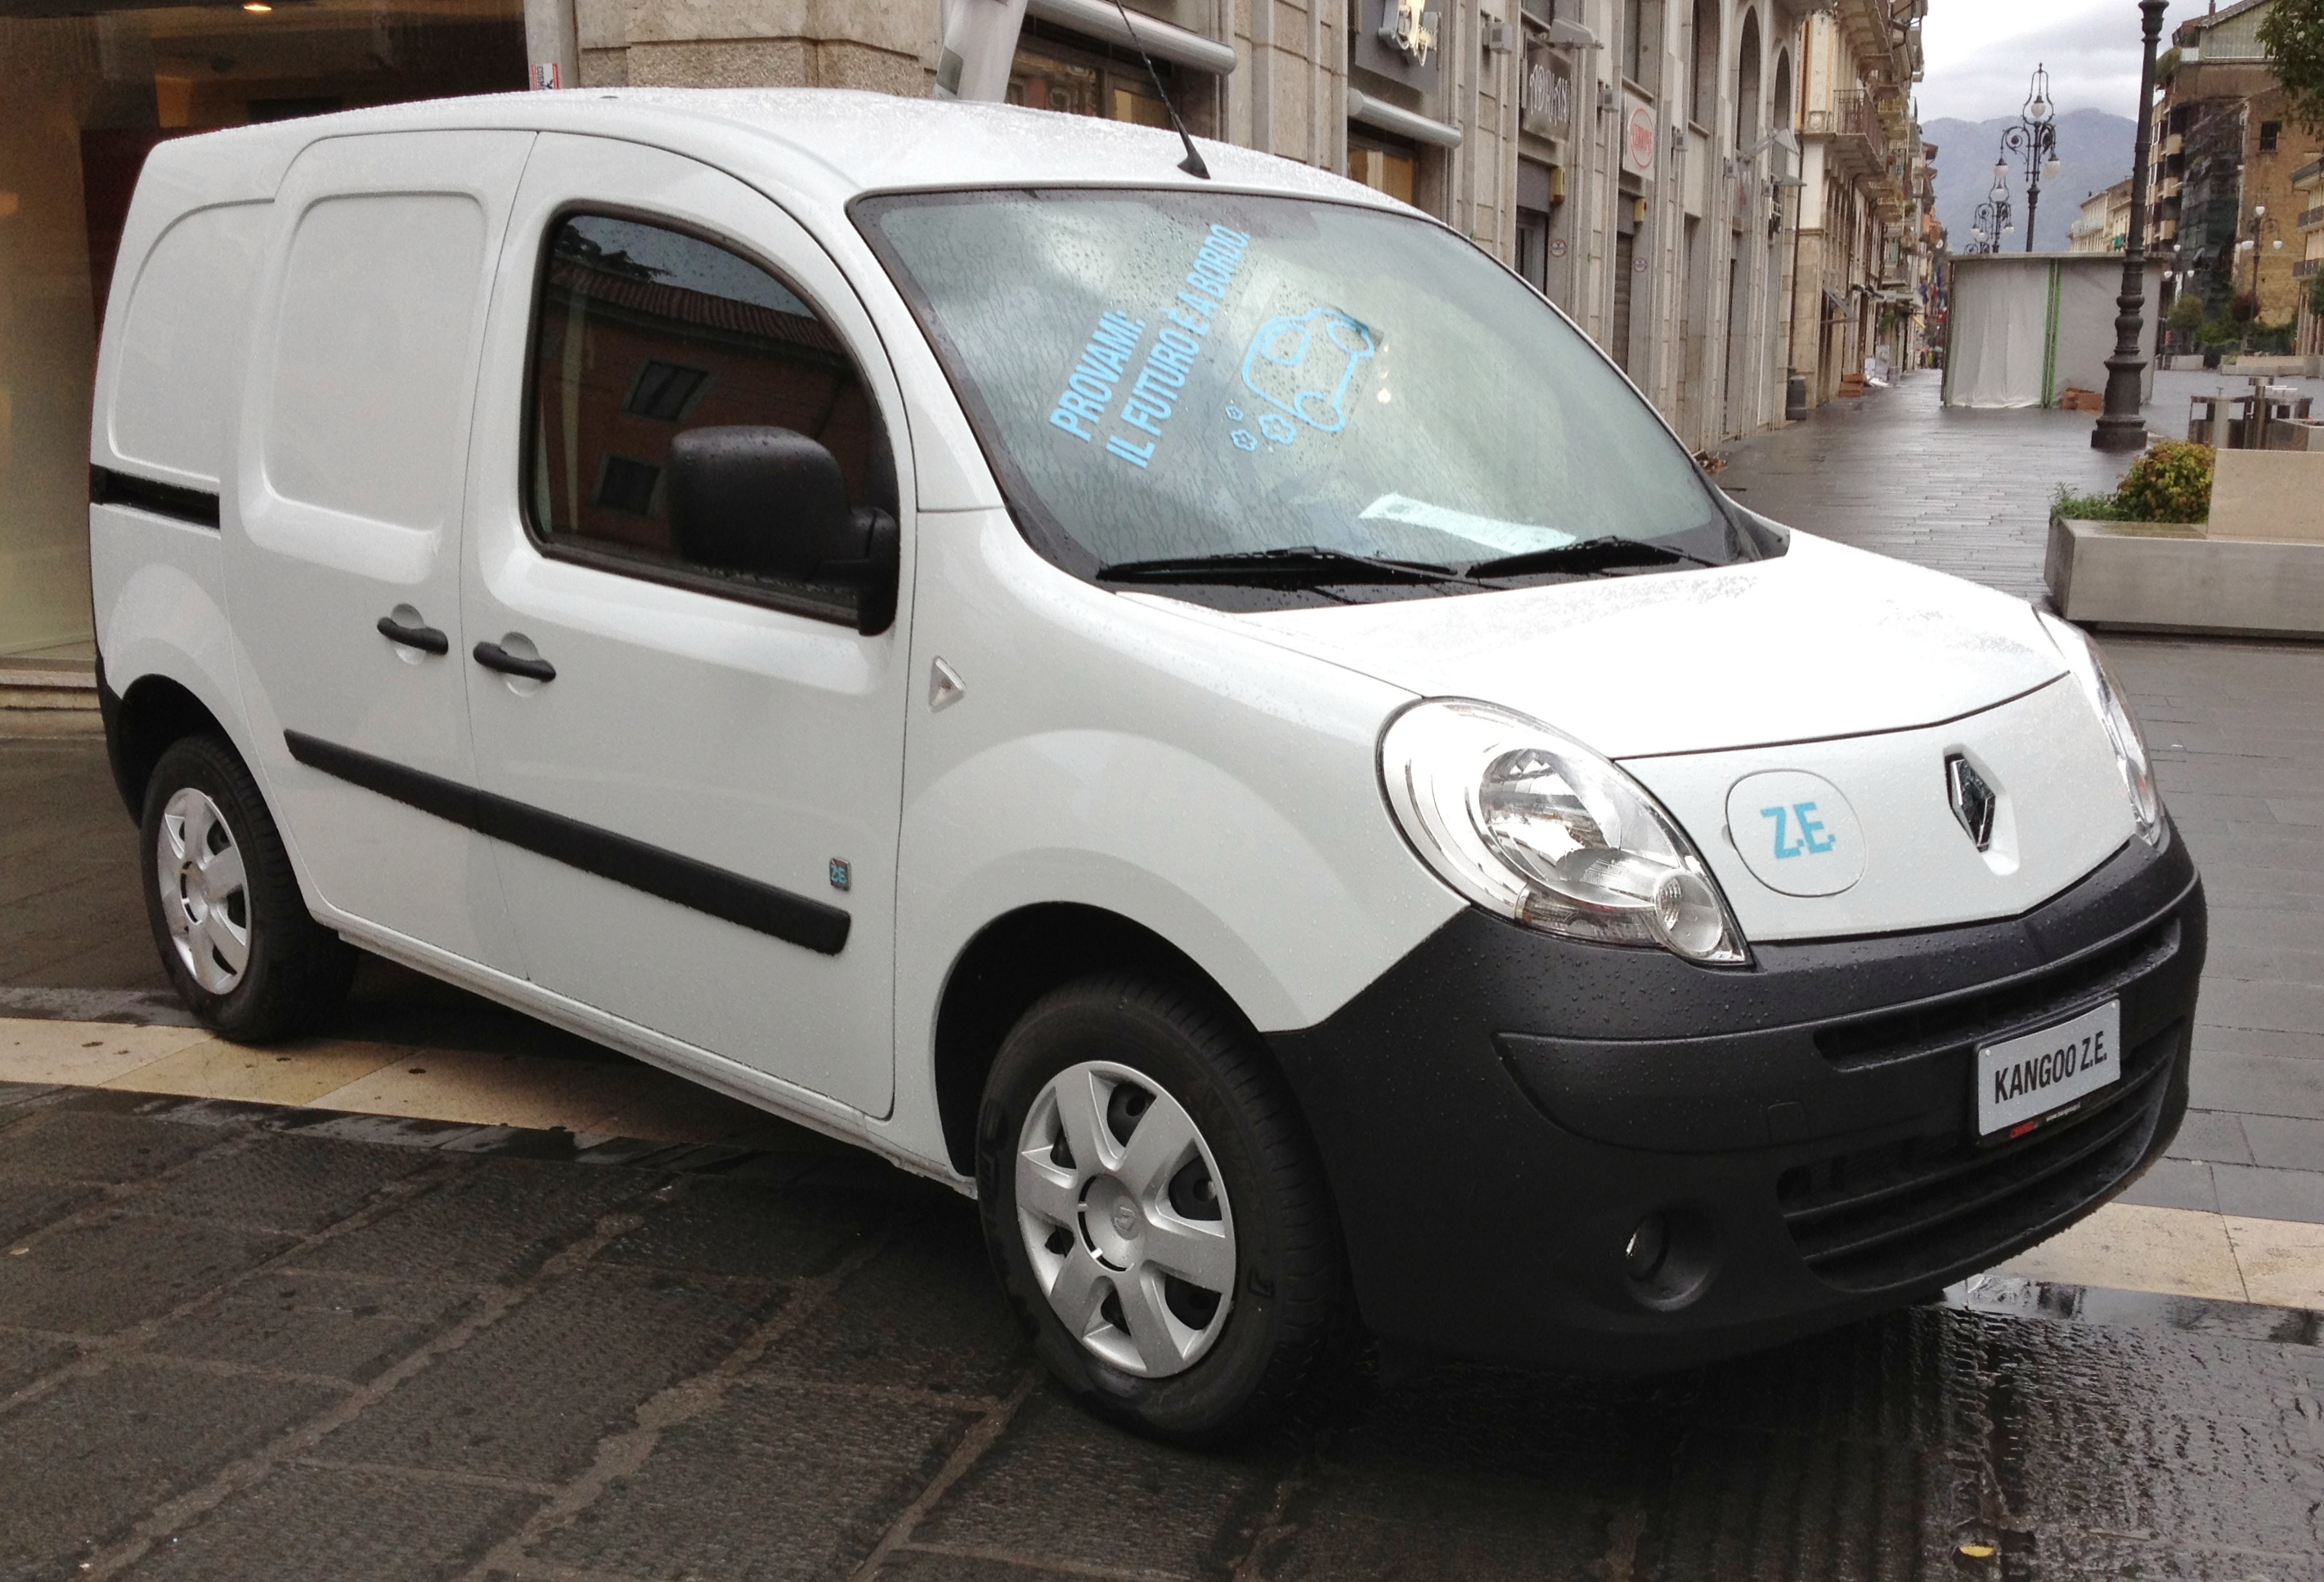 renault kangoo 33 maxi z e 2 sitzer ludego. Black Bedroom Furniture Sets. Home Design Ideas